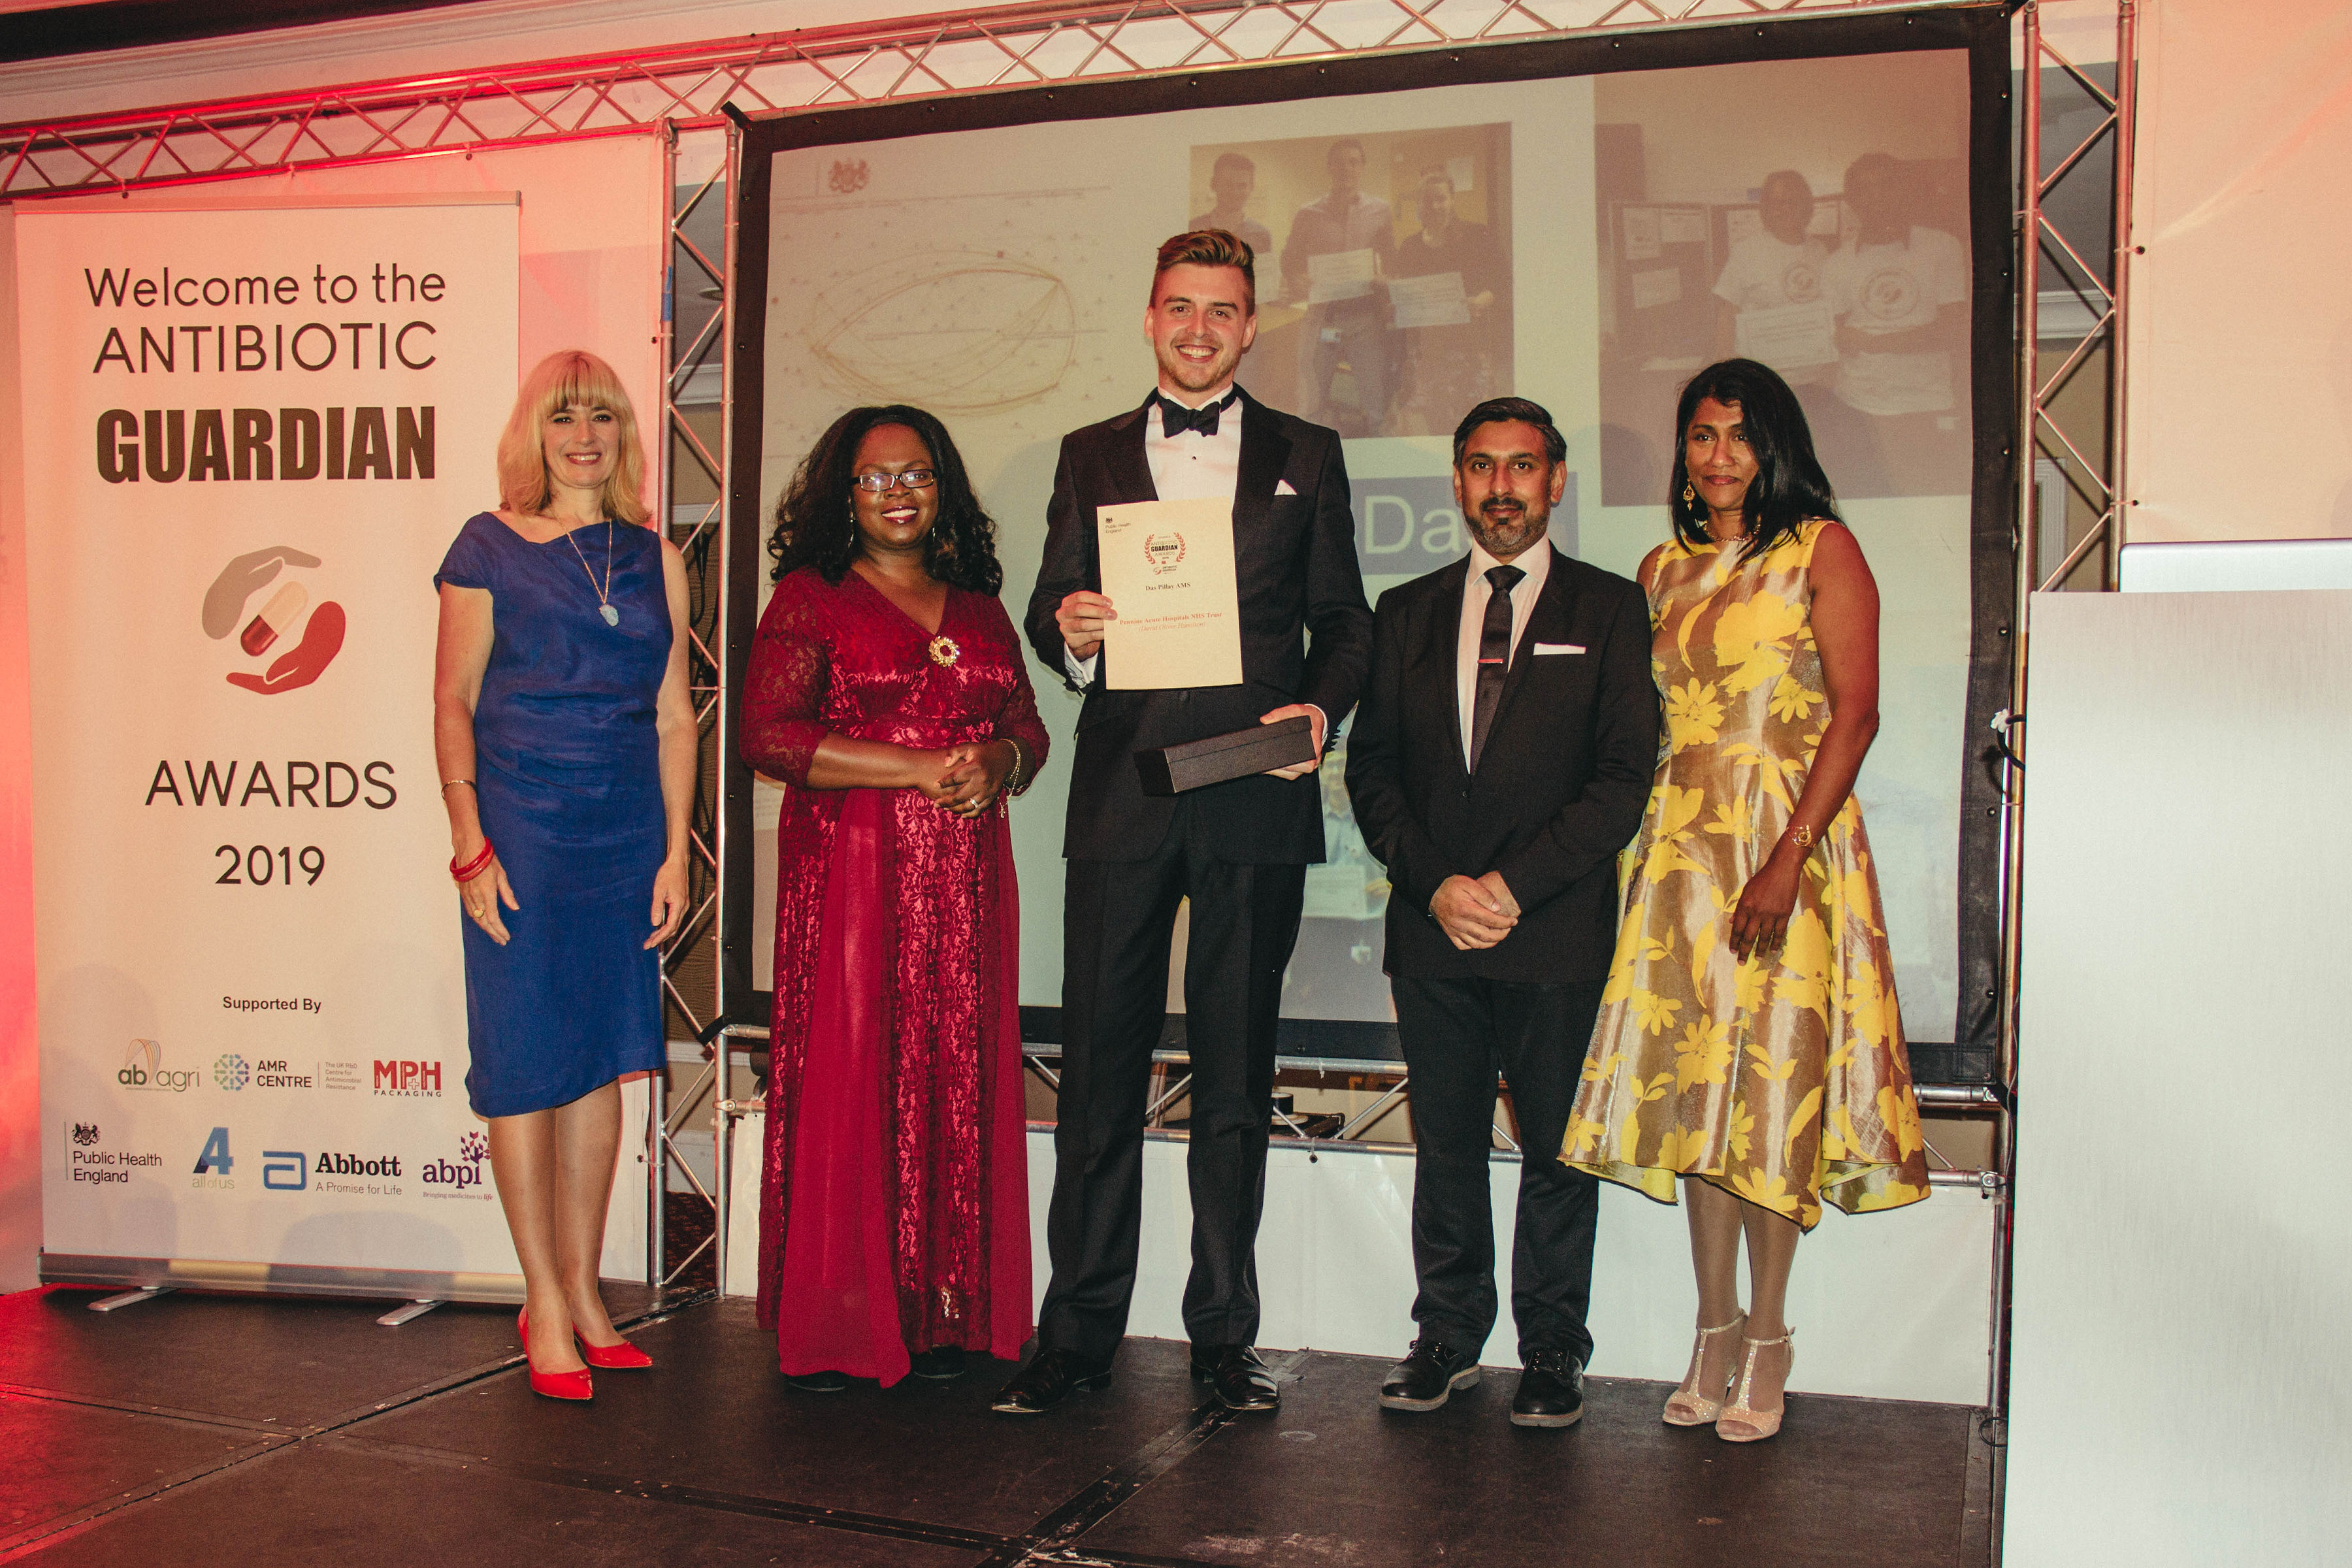 David Hamilton - Das Pillay Award